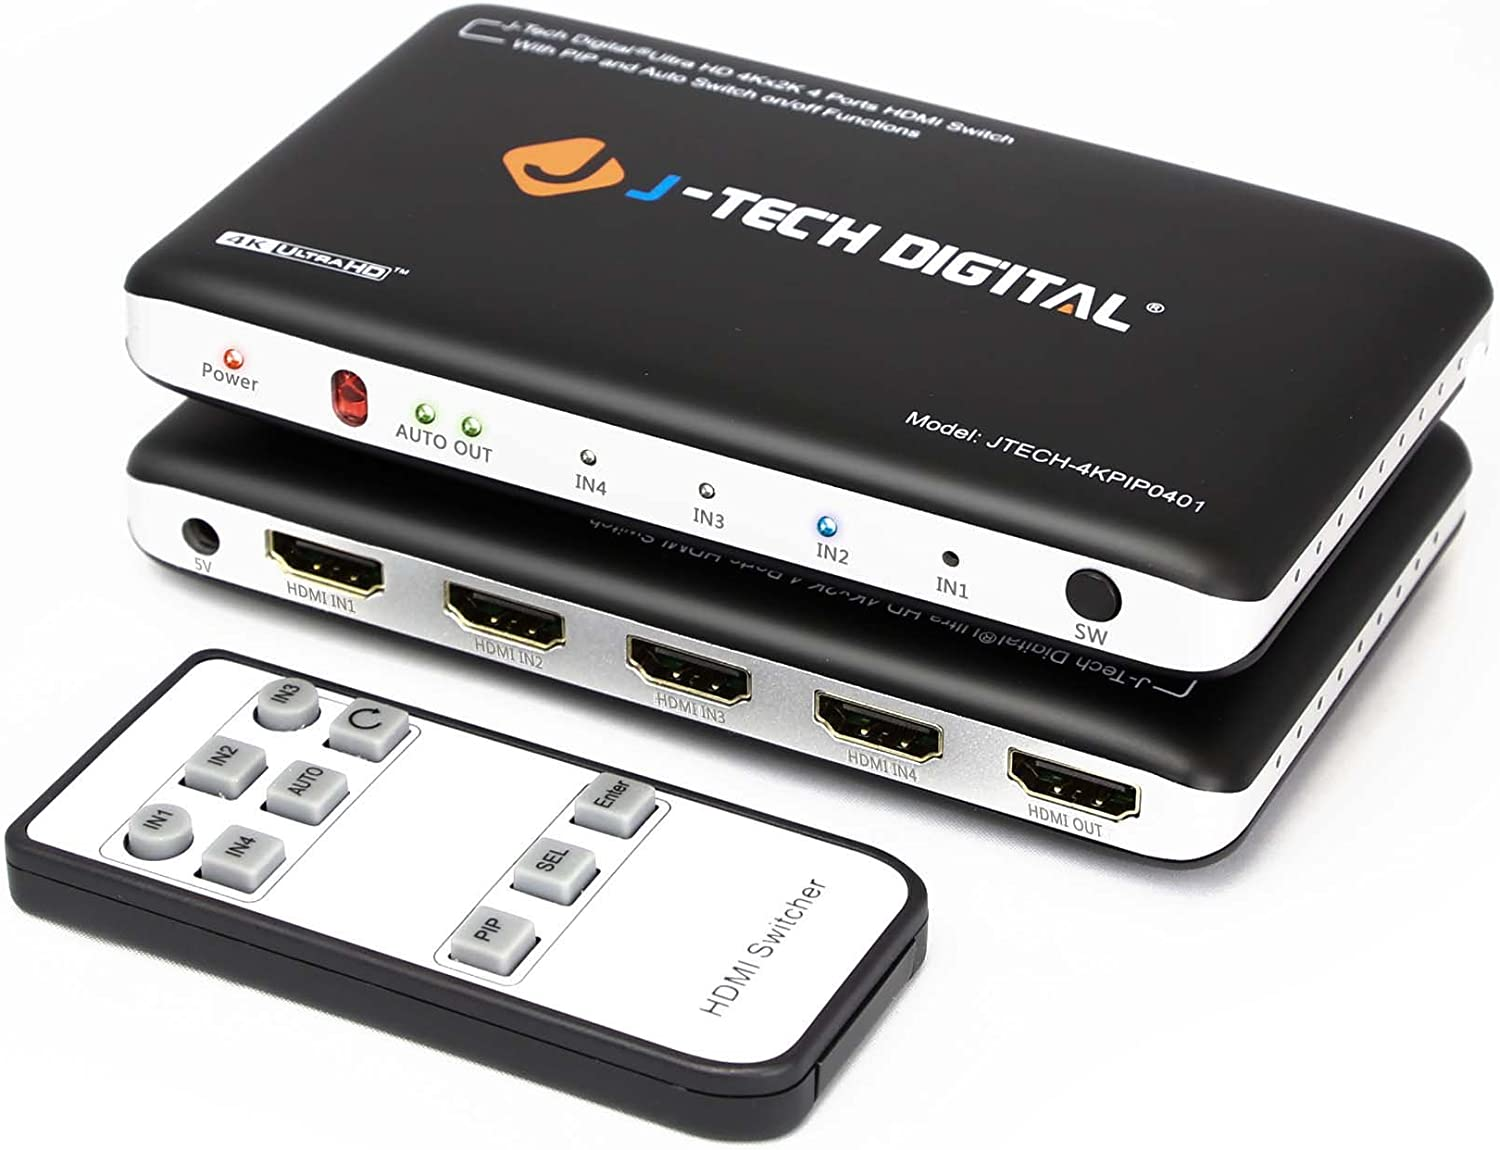 J-Tech Digital 4K x 2K 4-Port HDMI Switch with PIP, IR Wireless Remote Control, and Auto Switch ON/Off Functions HDMI Switcher Hub Port Switches